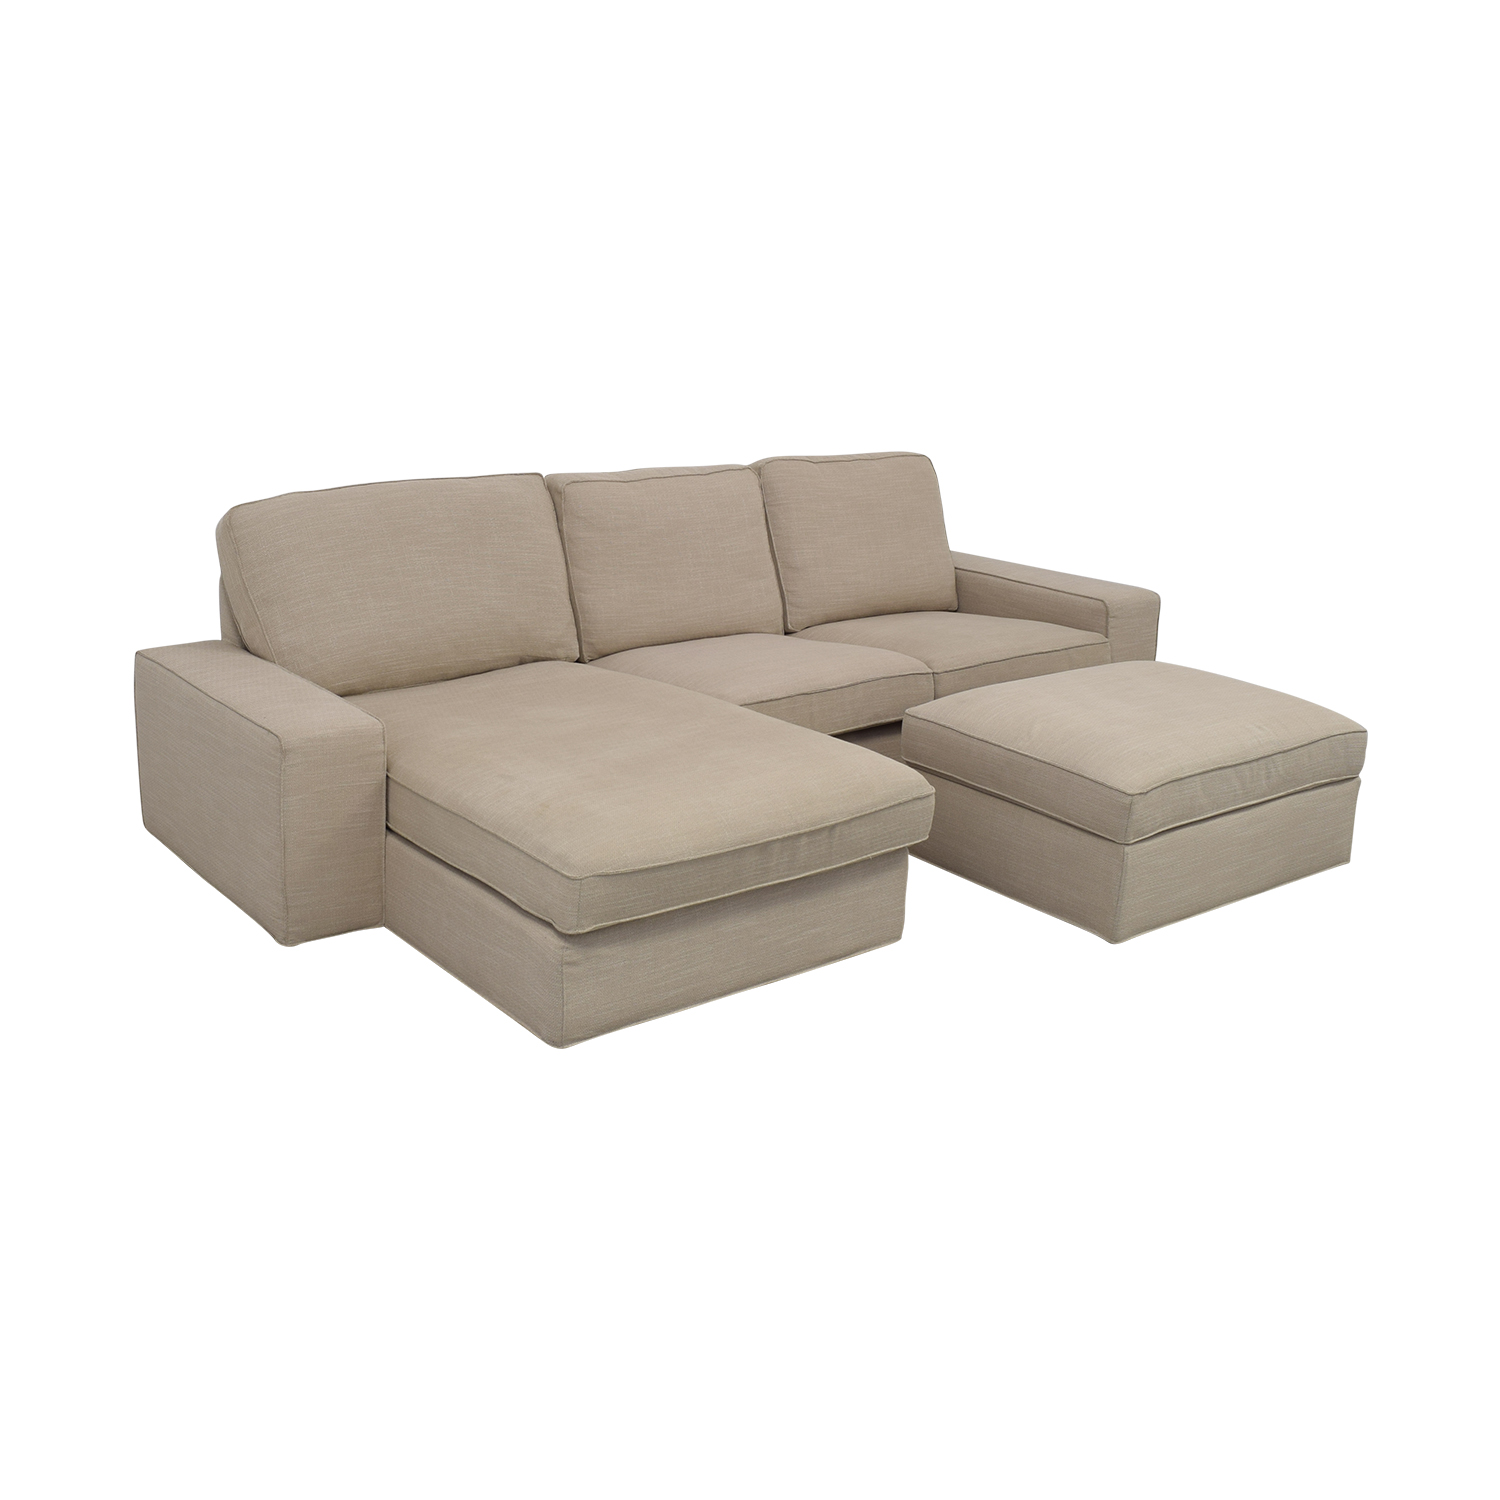 IKEA KIVIK Chaise Sofa with Ottoman sale